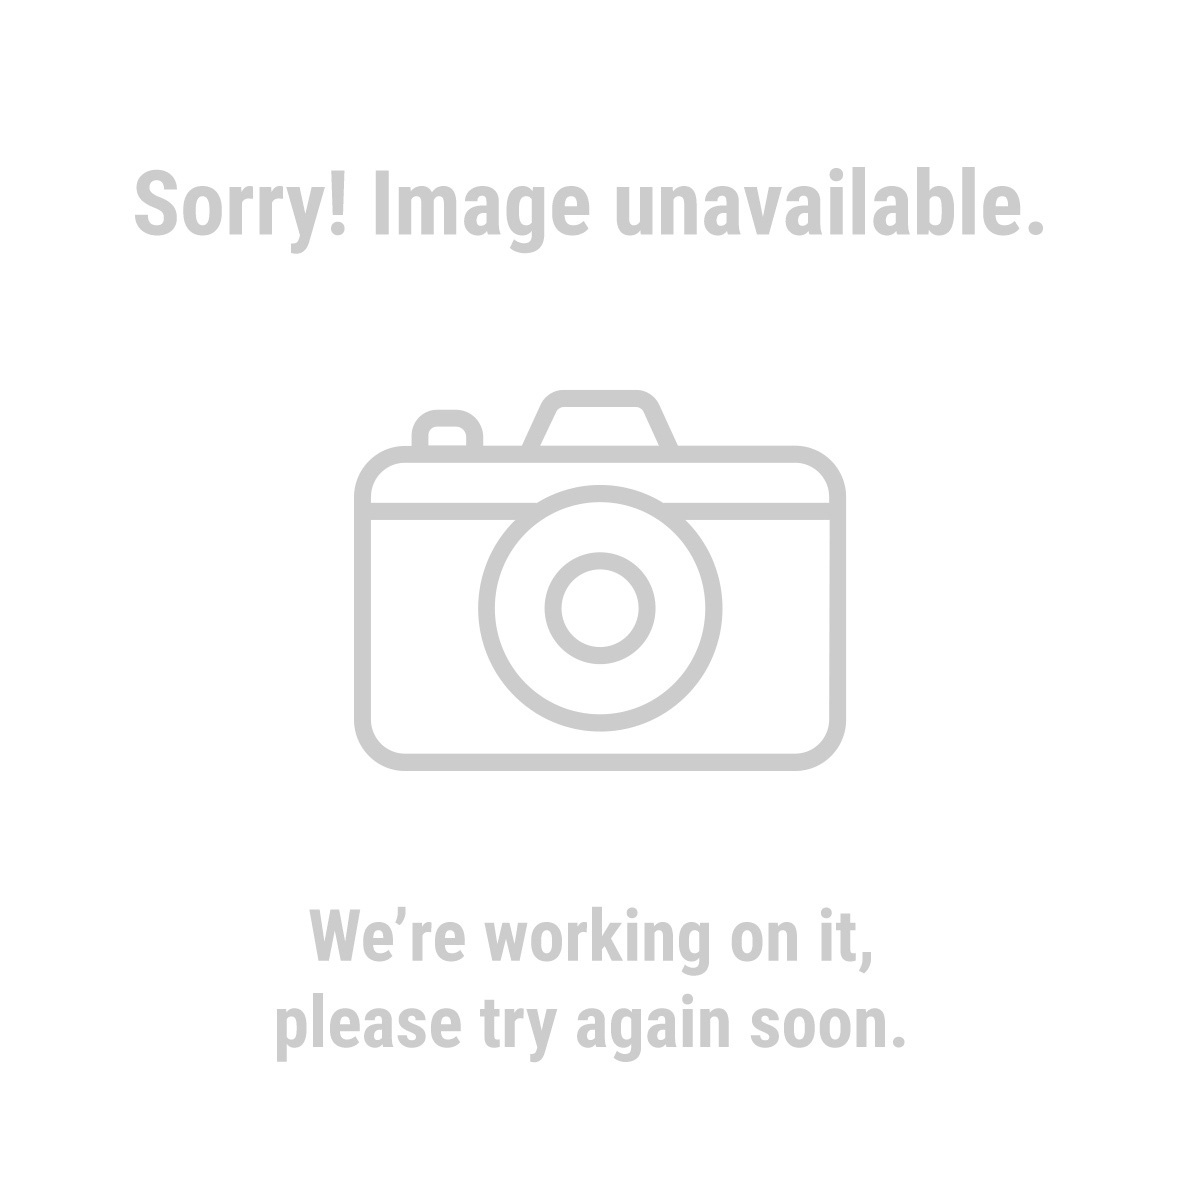 Western Safety 61372 Industrial Ear Muffs